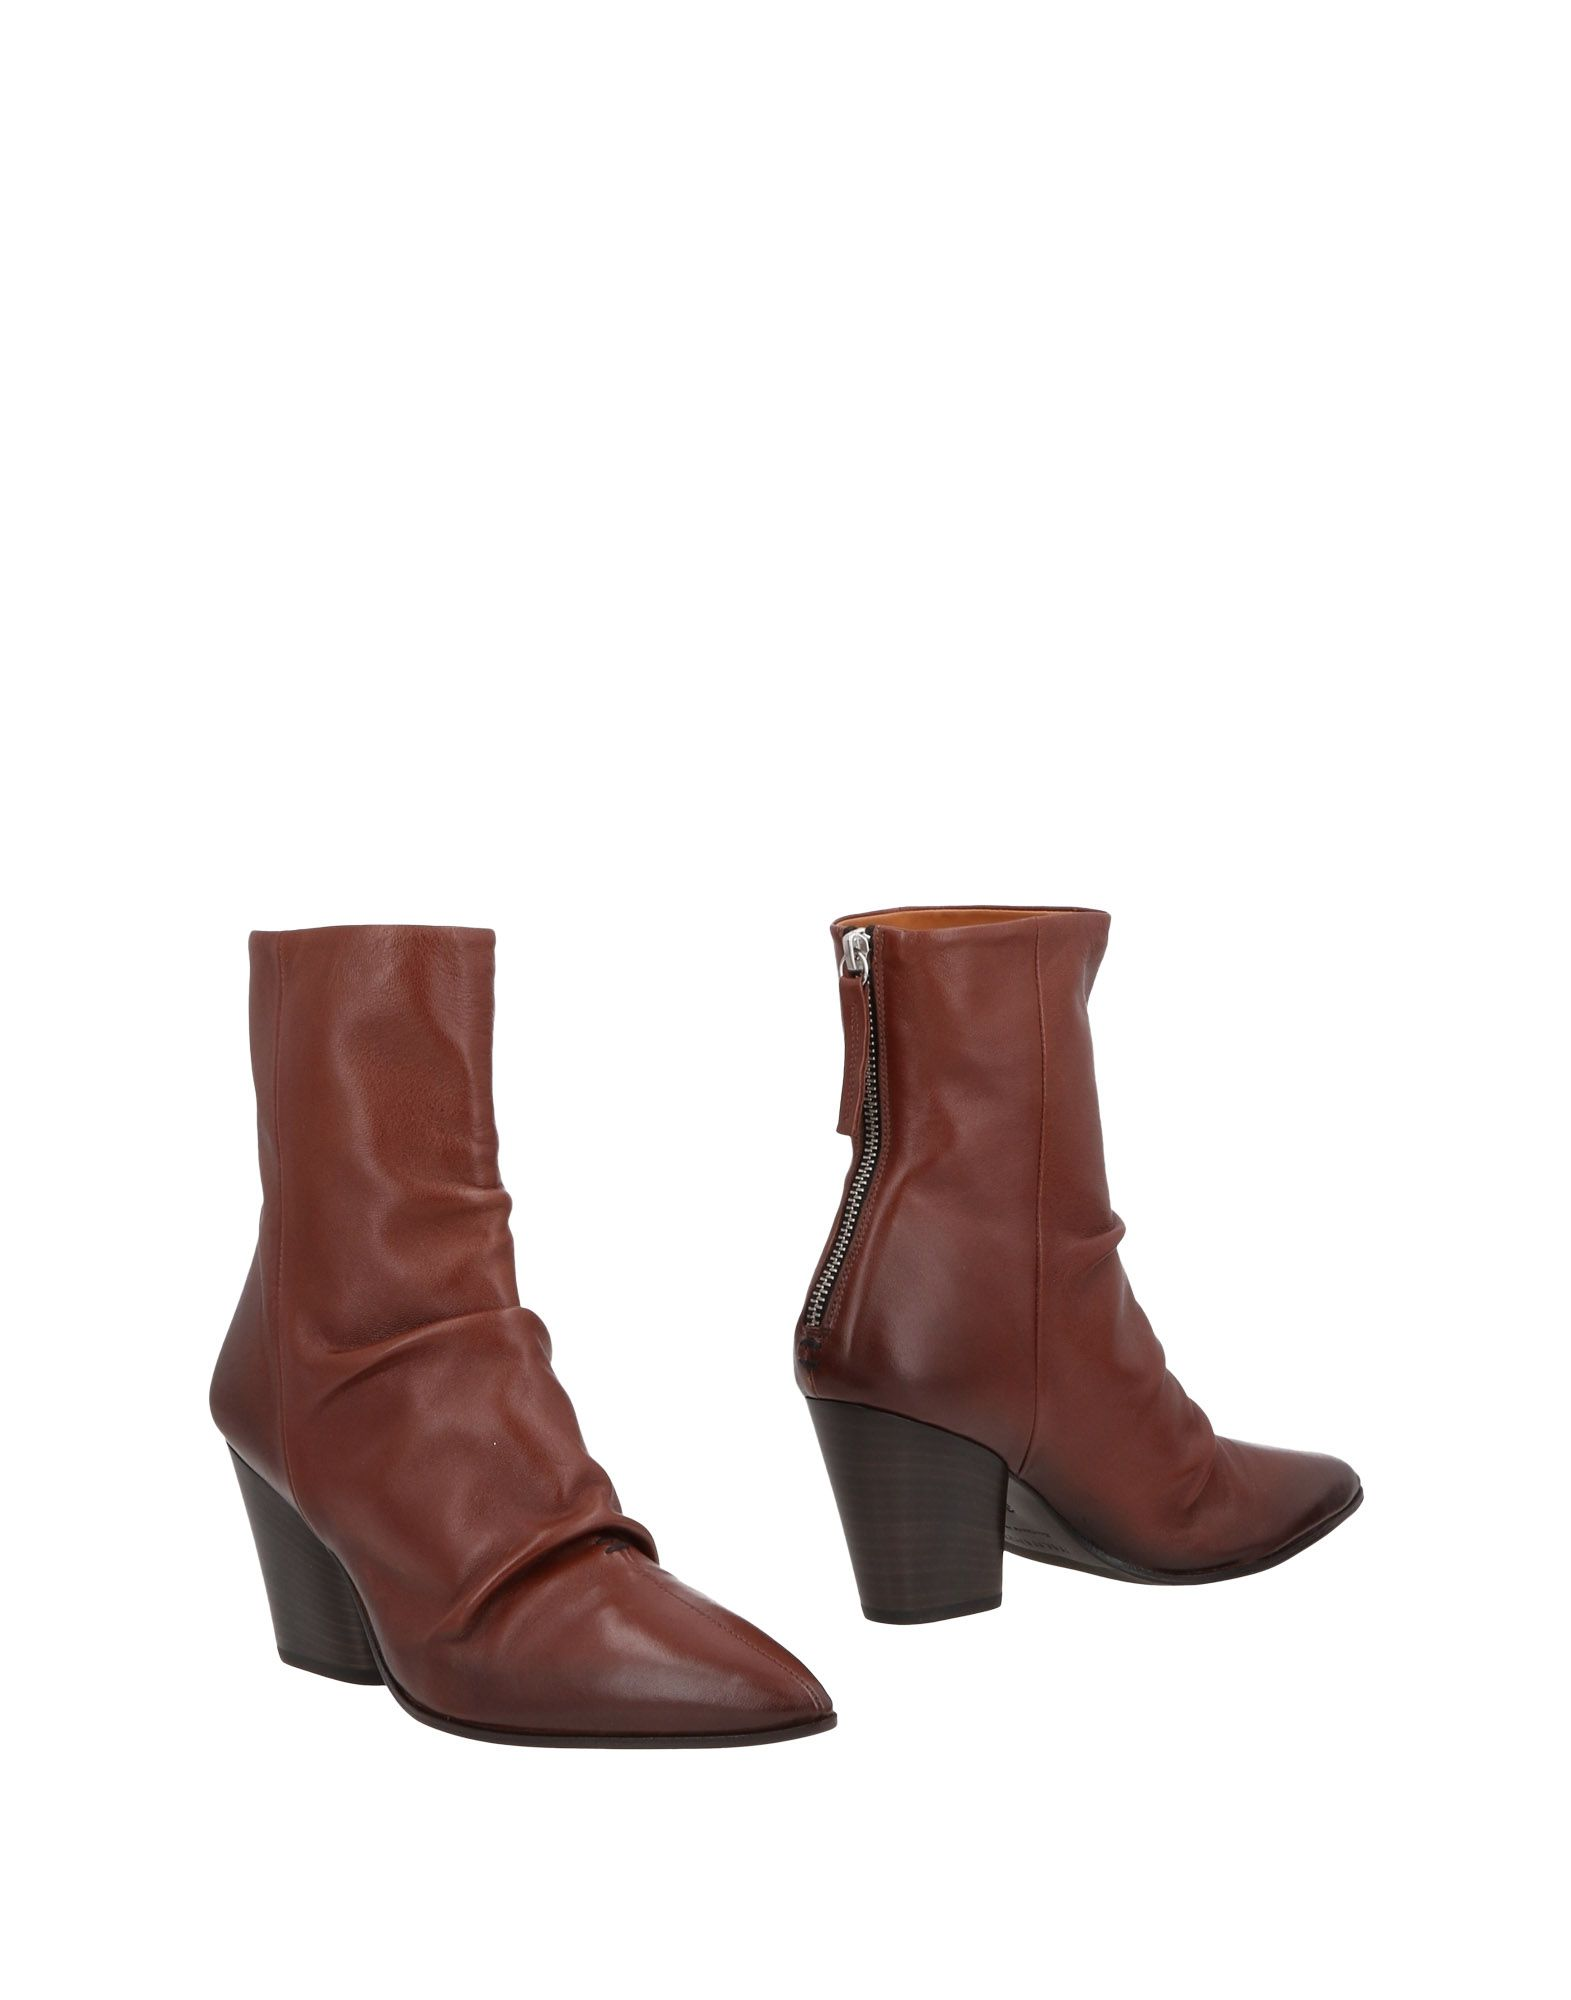 HALMANERA Ankle Boot in Brown